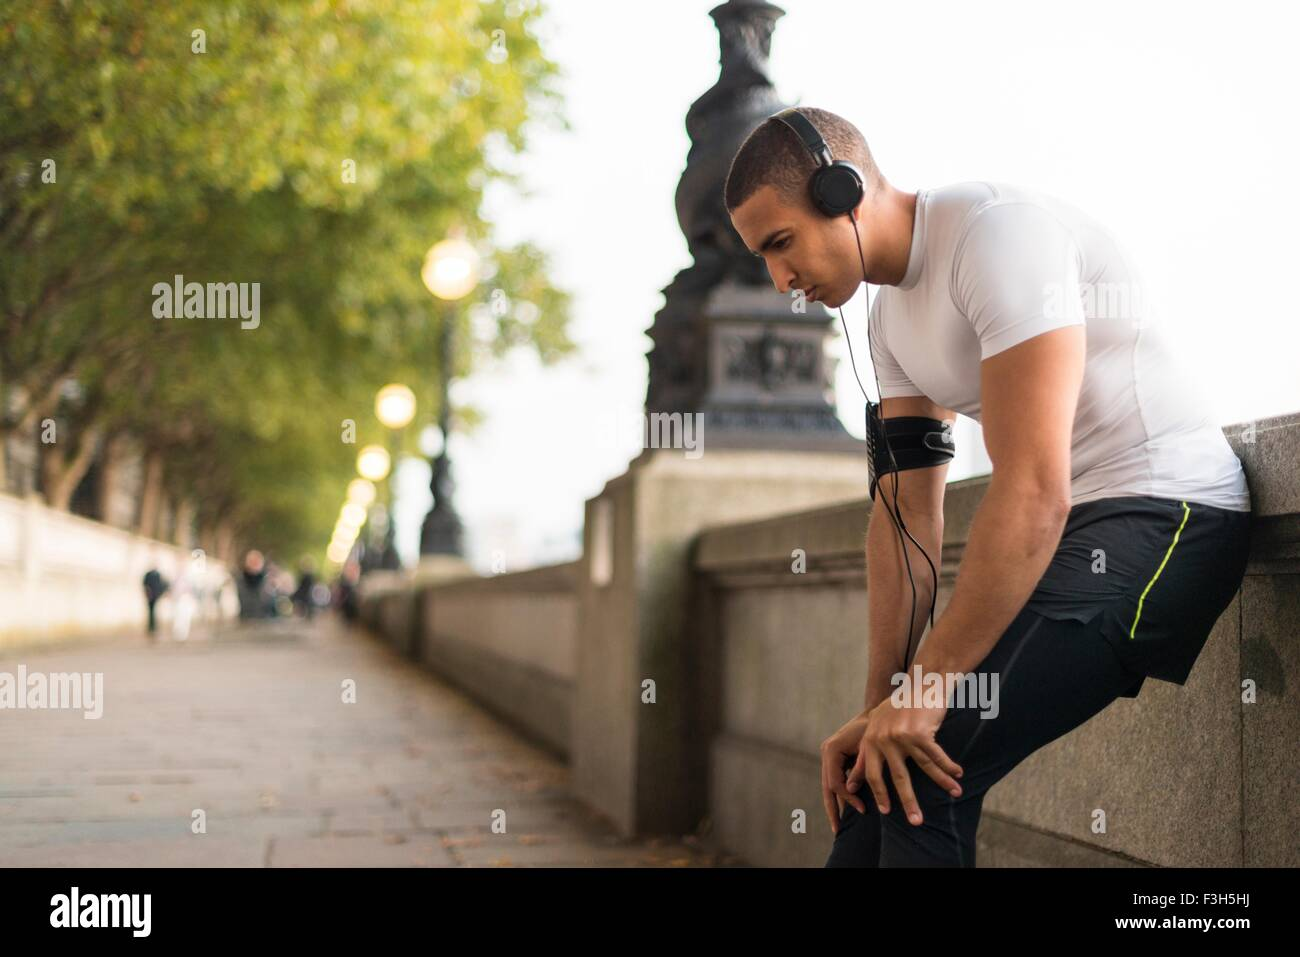 Young male runner wearing headphones taking a break on riverside - Stock Image